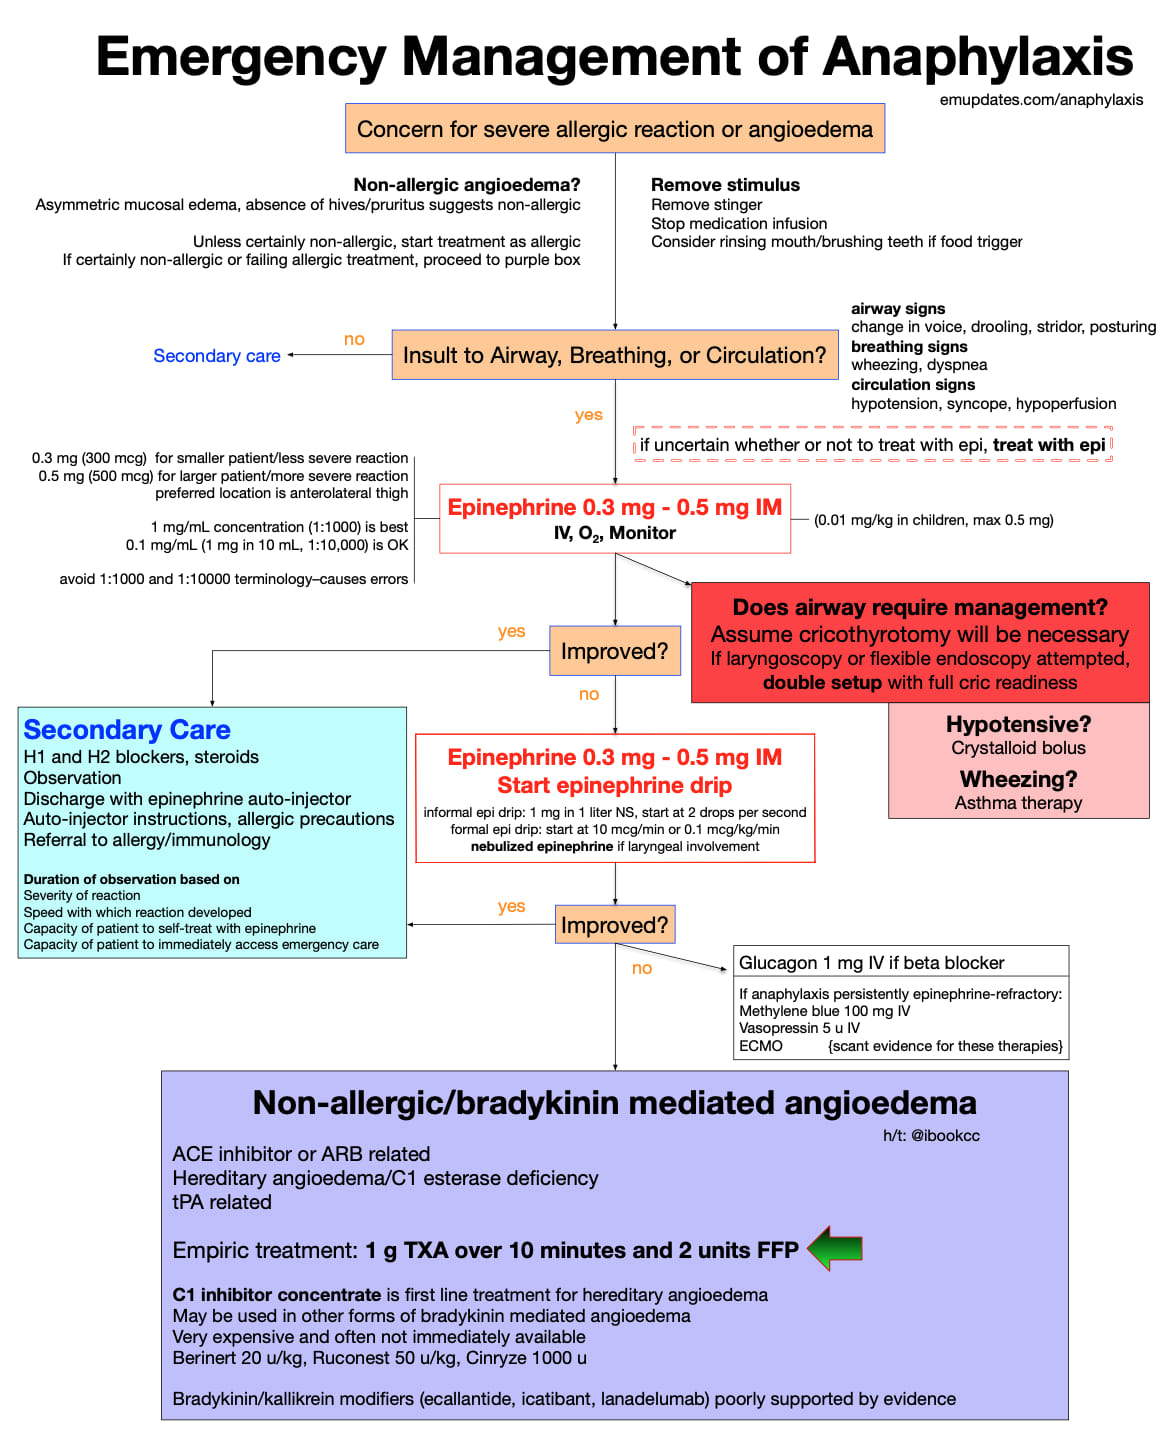 Anaphylaxis management